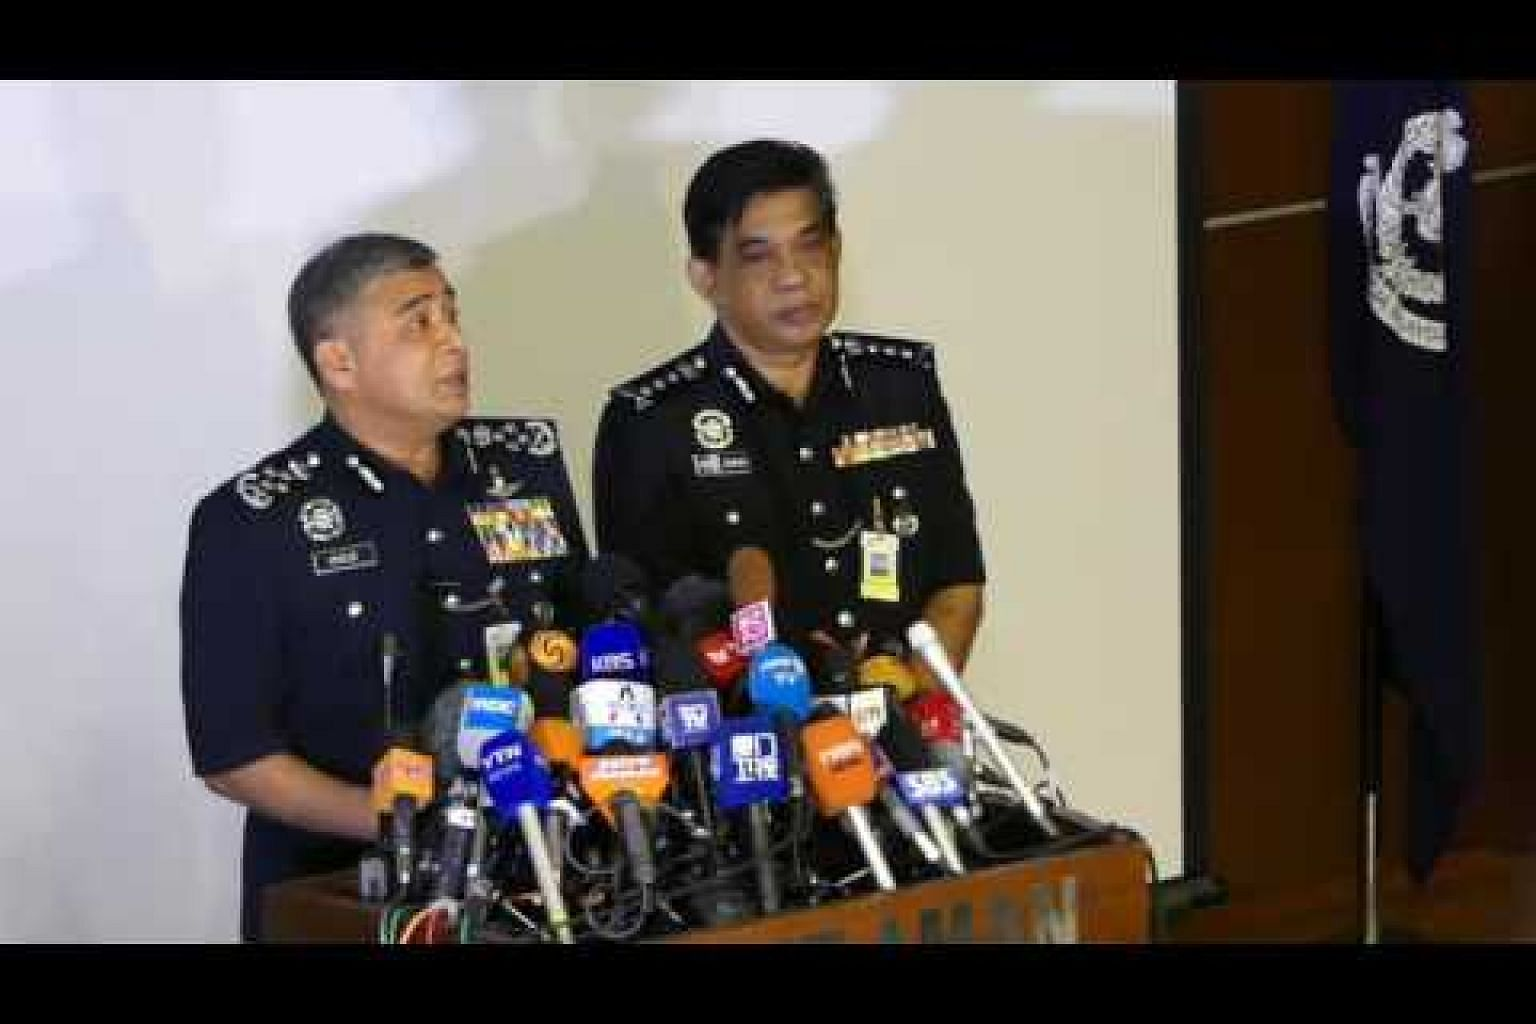 Malaysian police identify two North Koreans sought in connection with Kim Jong Nam's murder